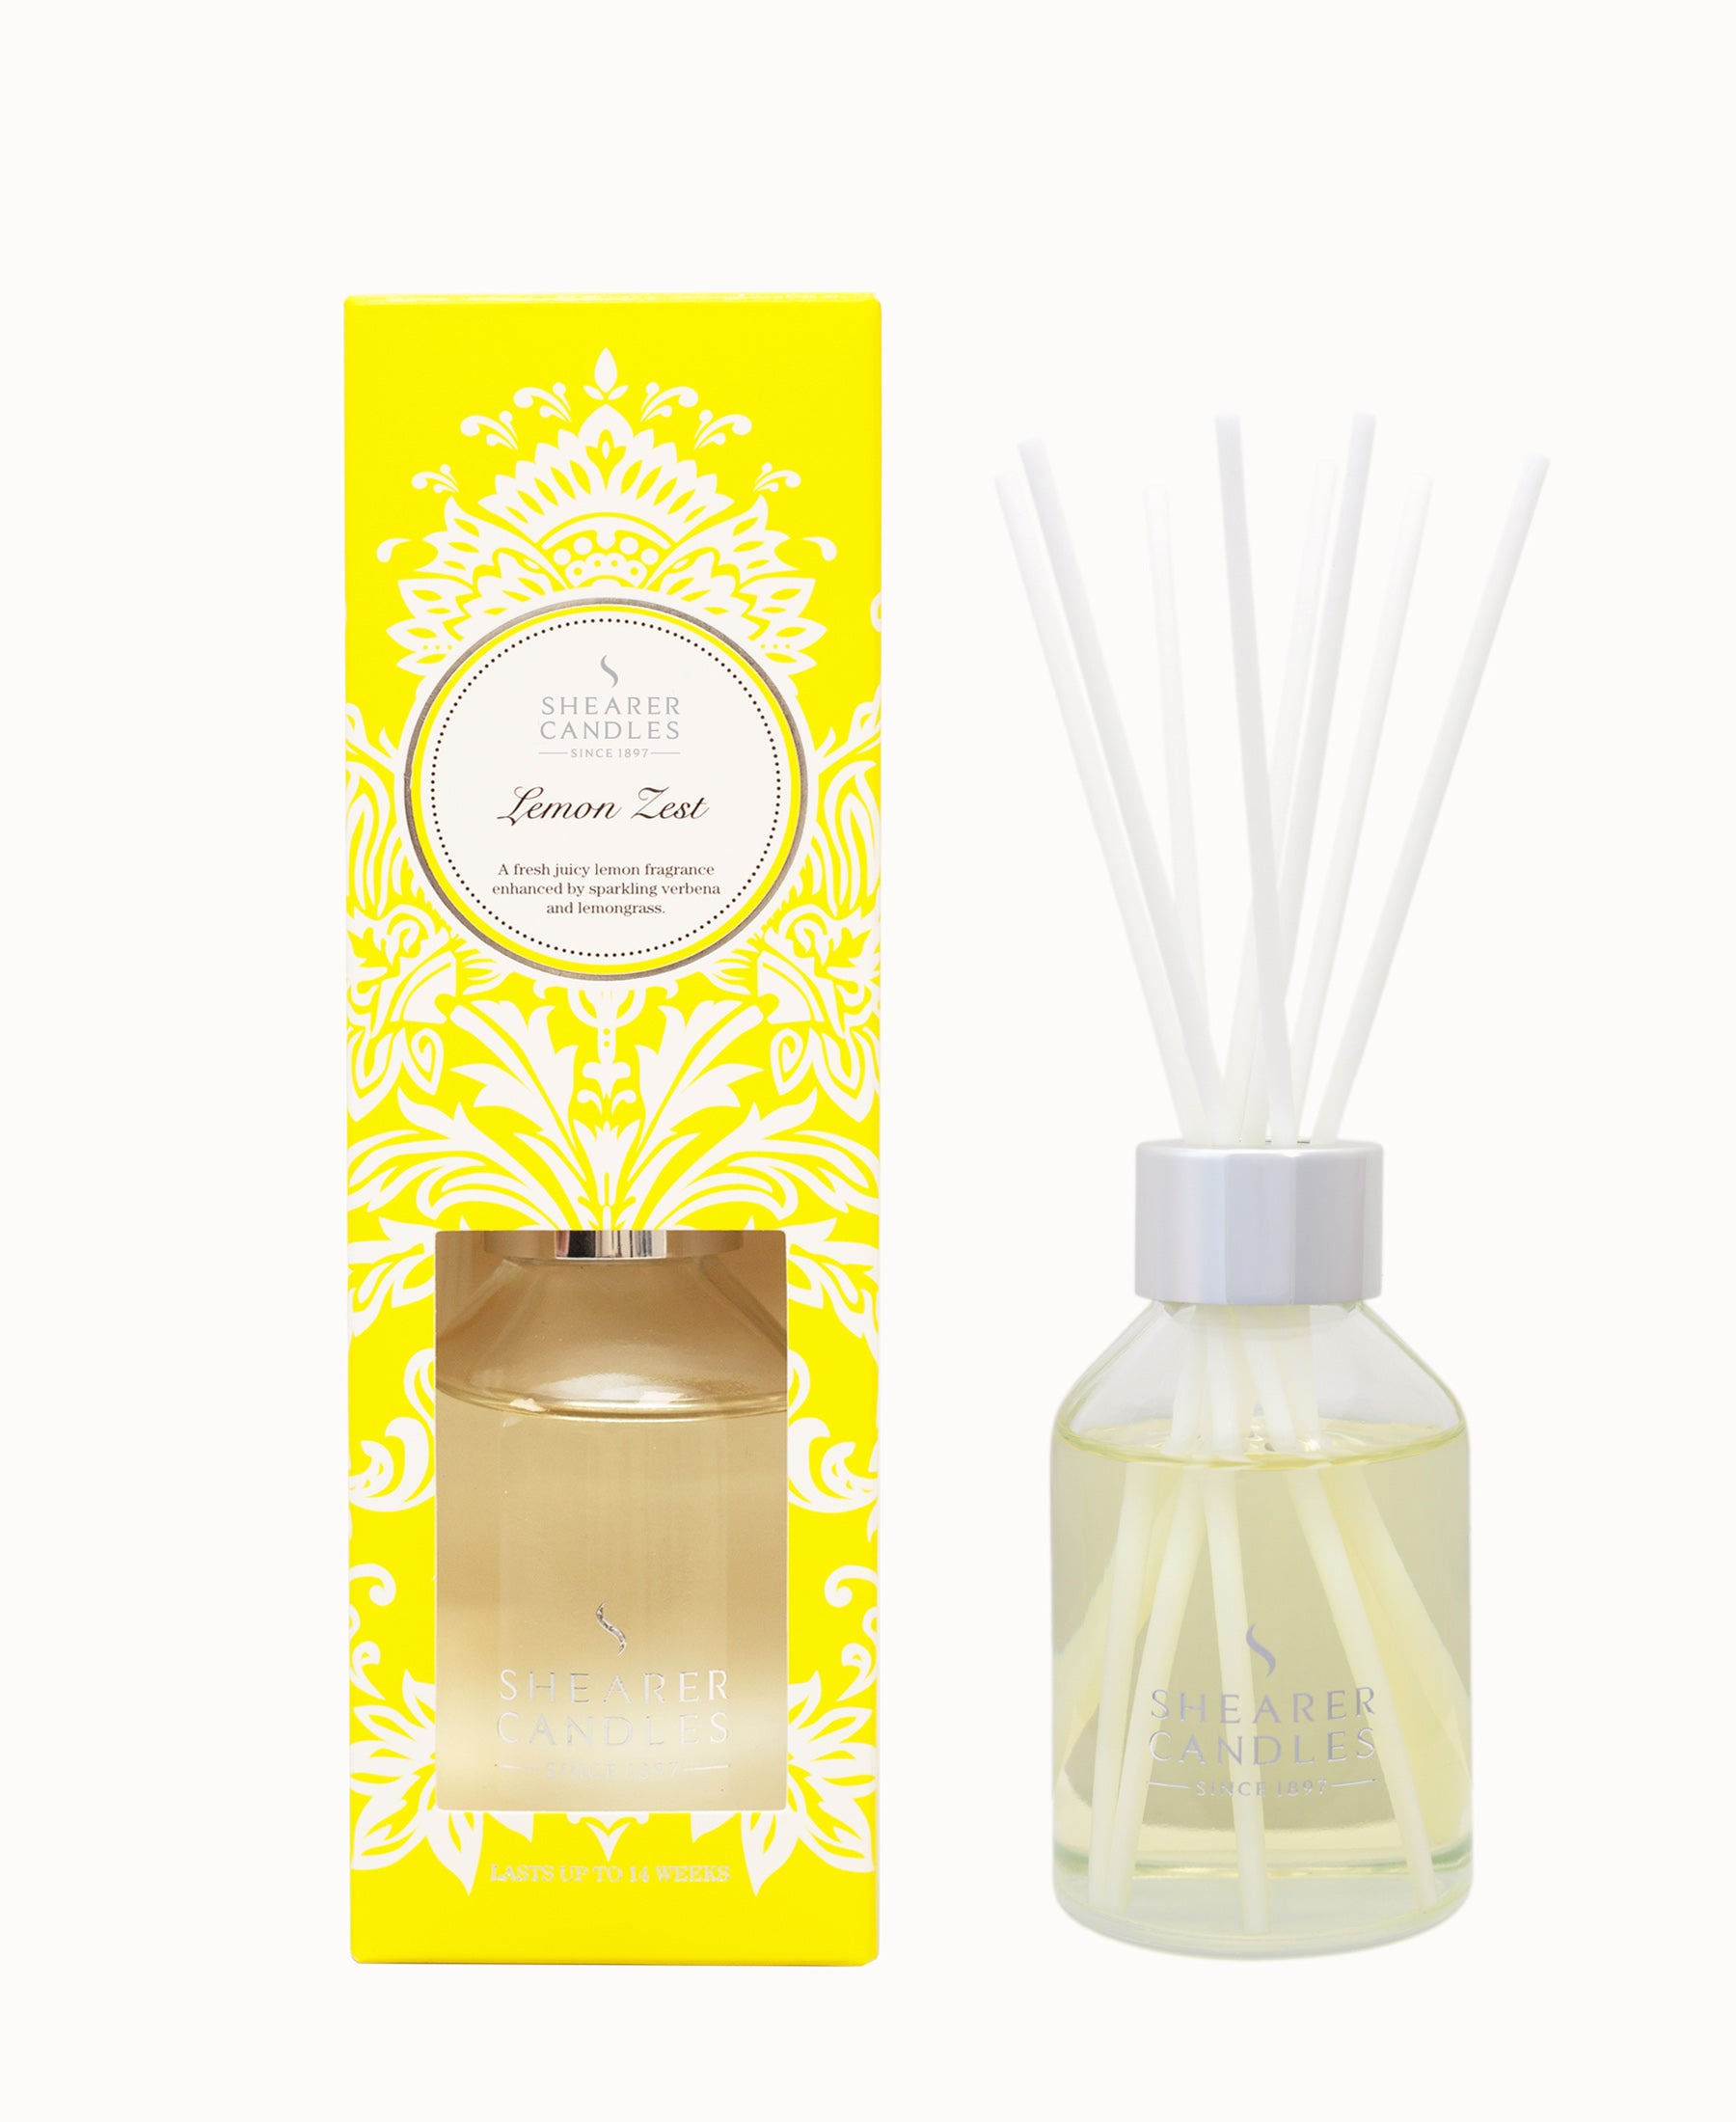 Shearer Candles Lemon Zest Diffuser